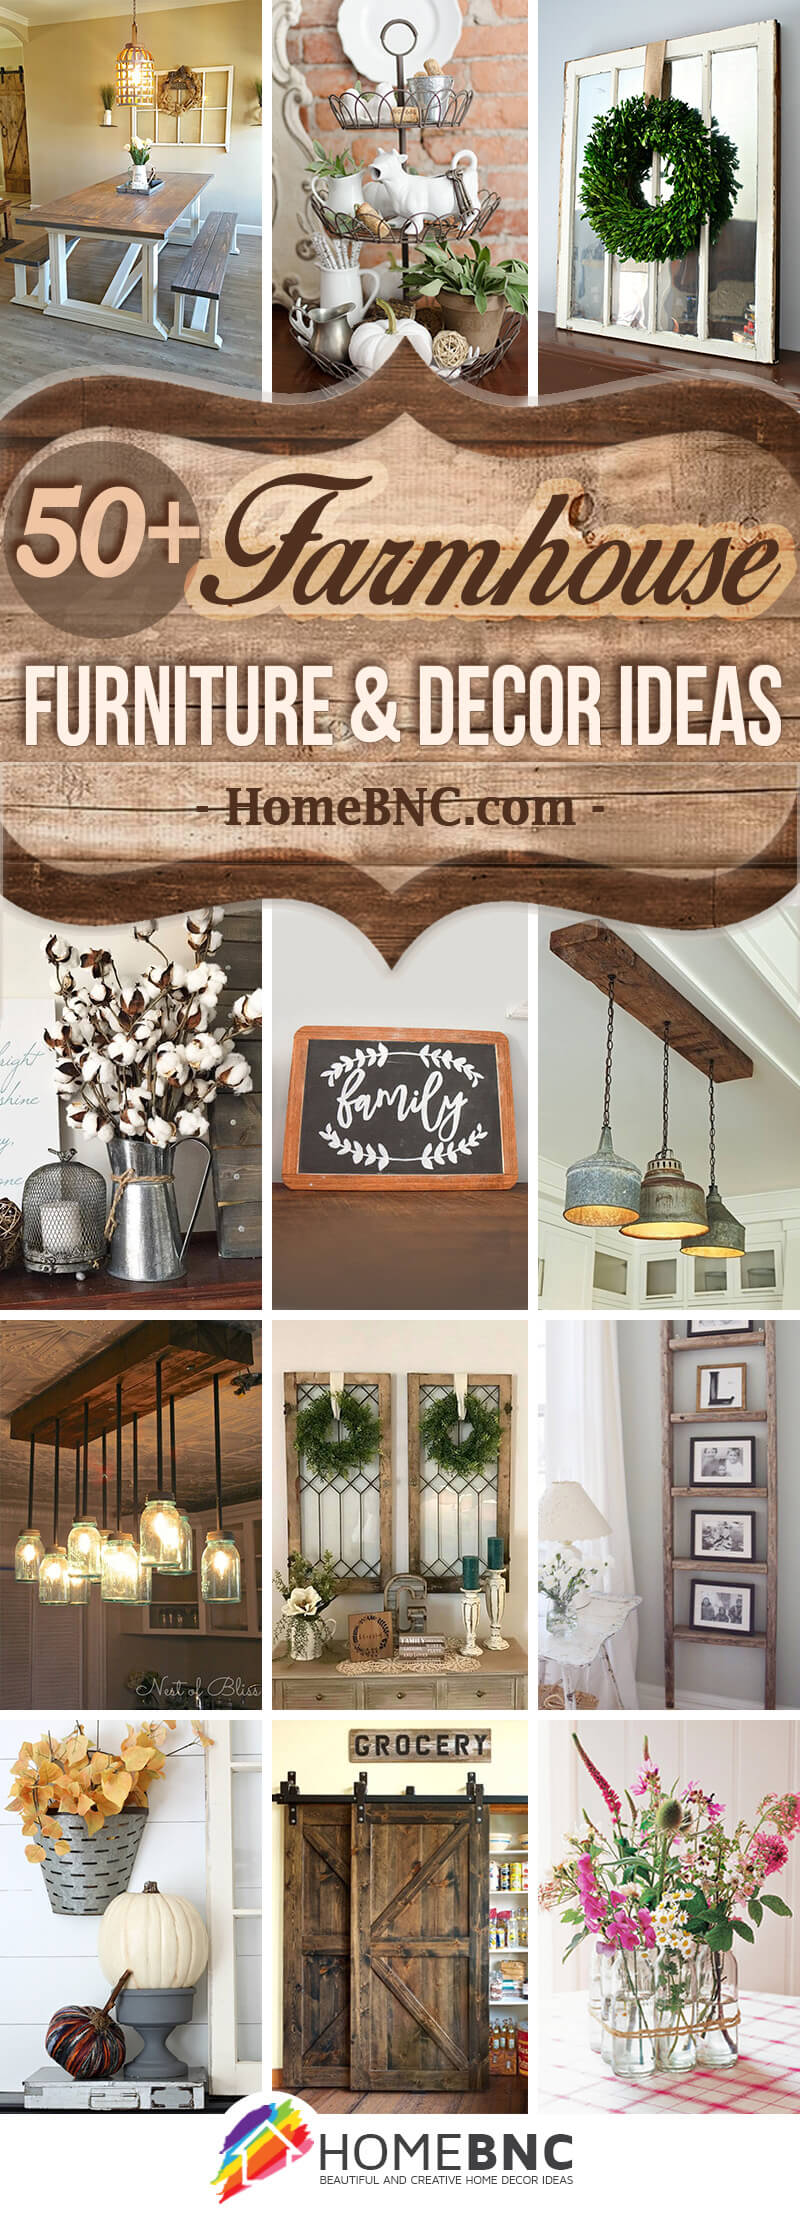 Farmhouse Furniture and Decor Ideas